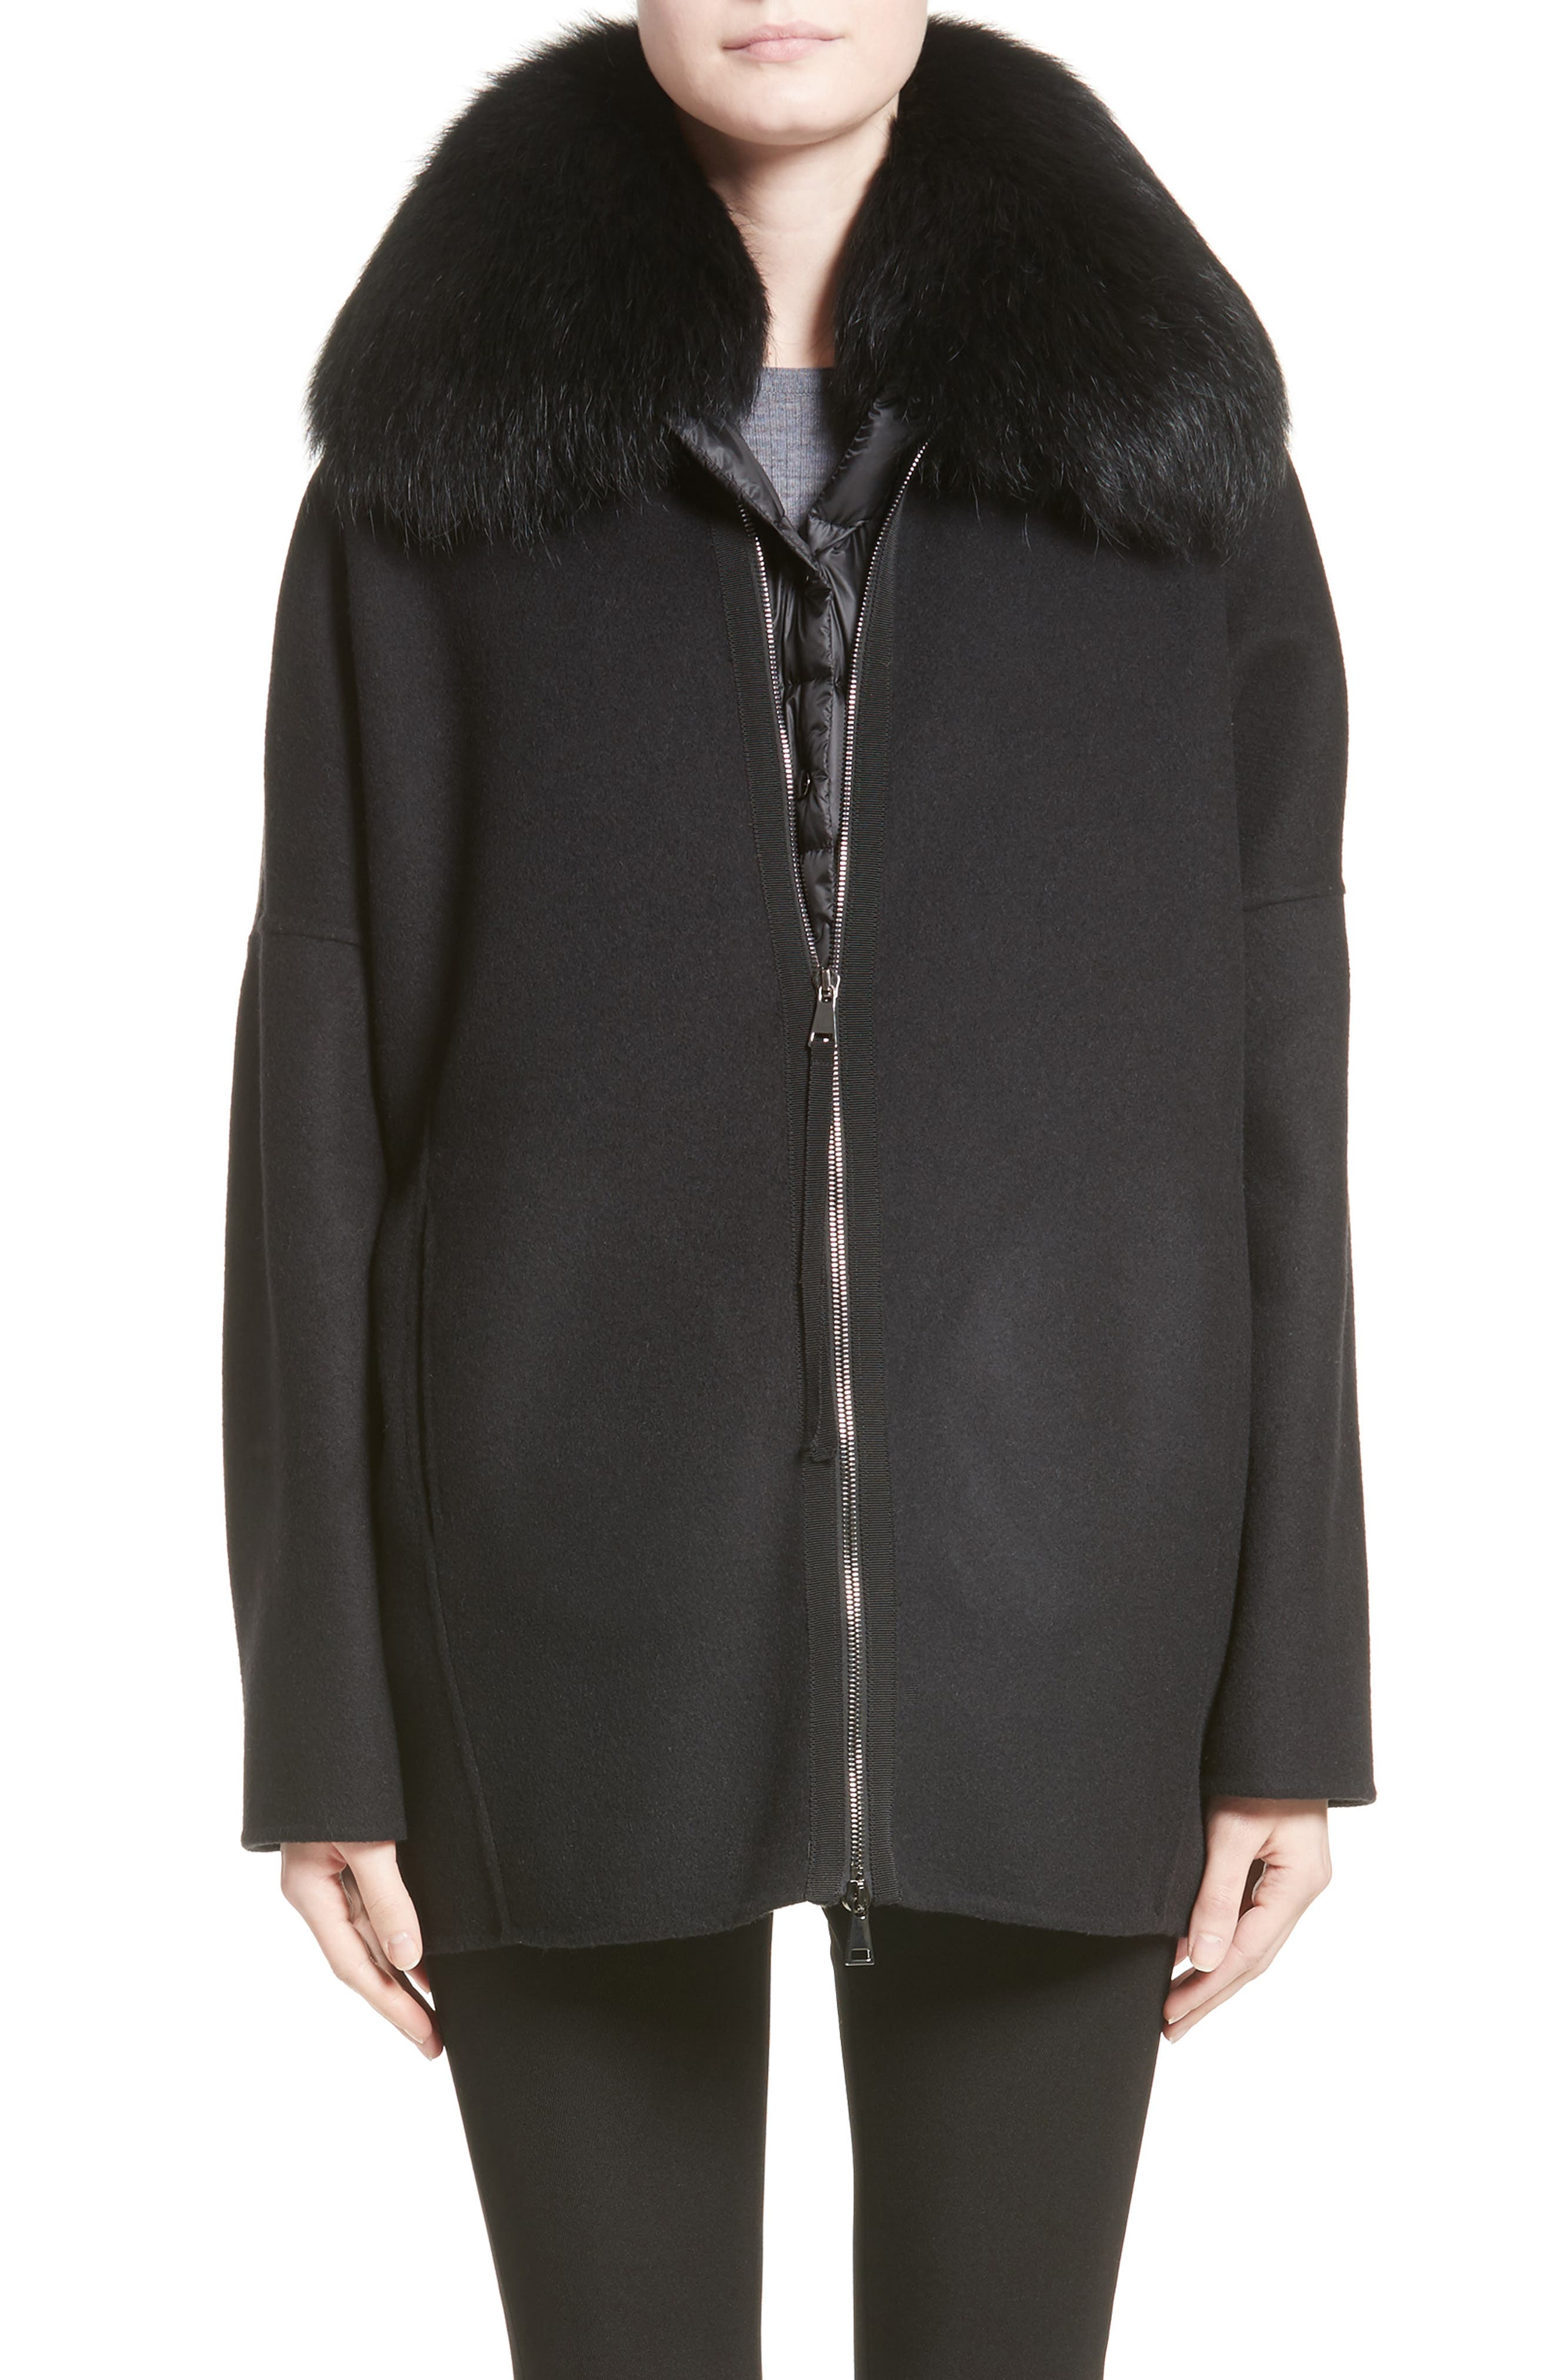 Alternate Image 1 Selected - Moncler Buxus Wool & Cashmere Coat with Removable Genuine Fox Fur Trim Vest